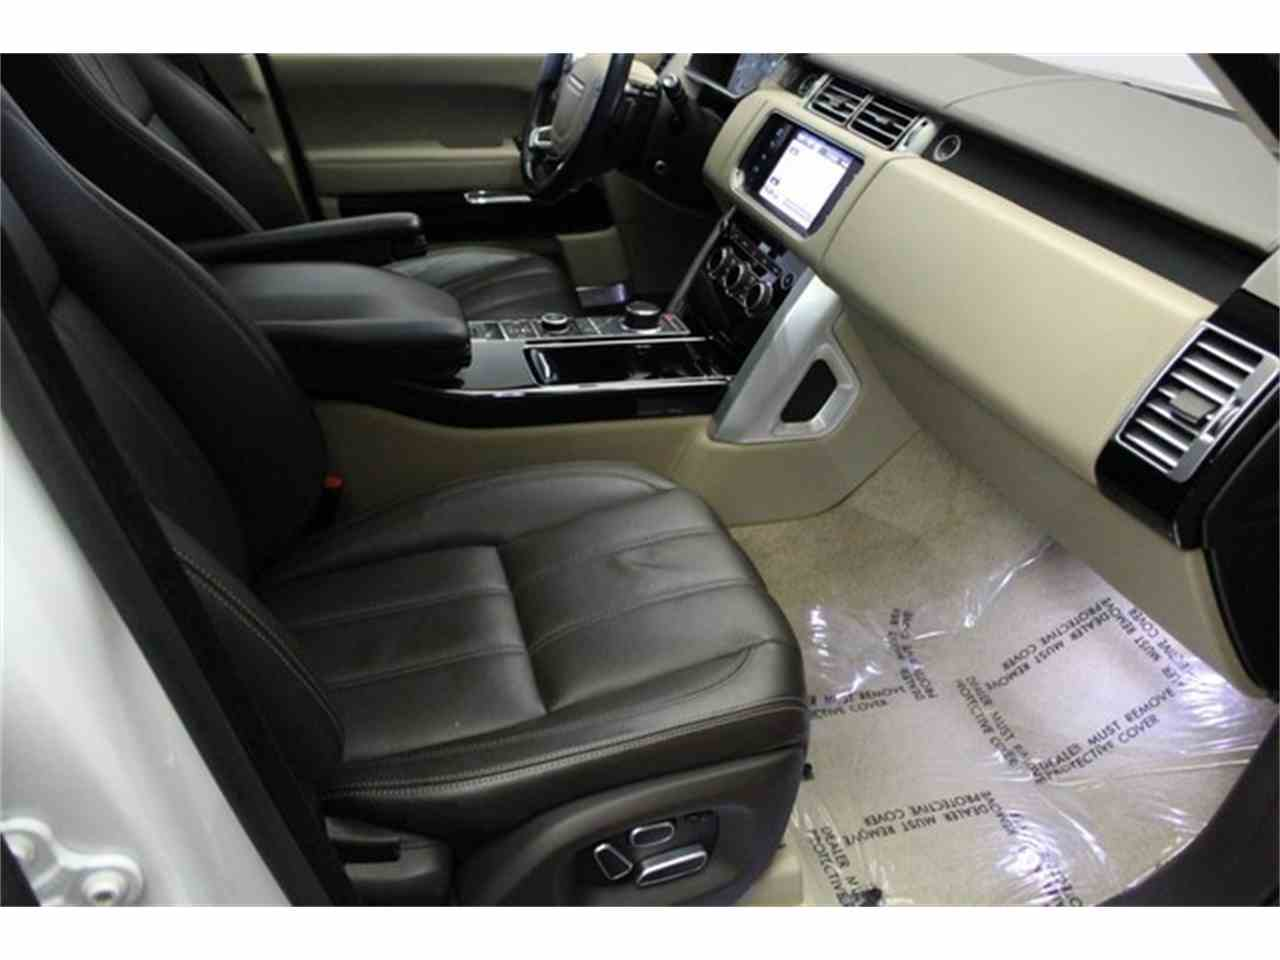 Large Picture of 2013 Range Rover located in California - $73,888.00 - KHXU